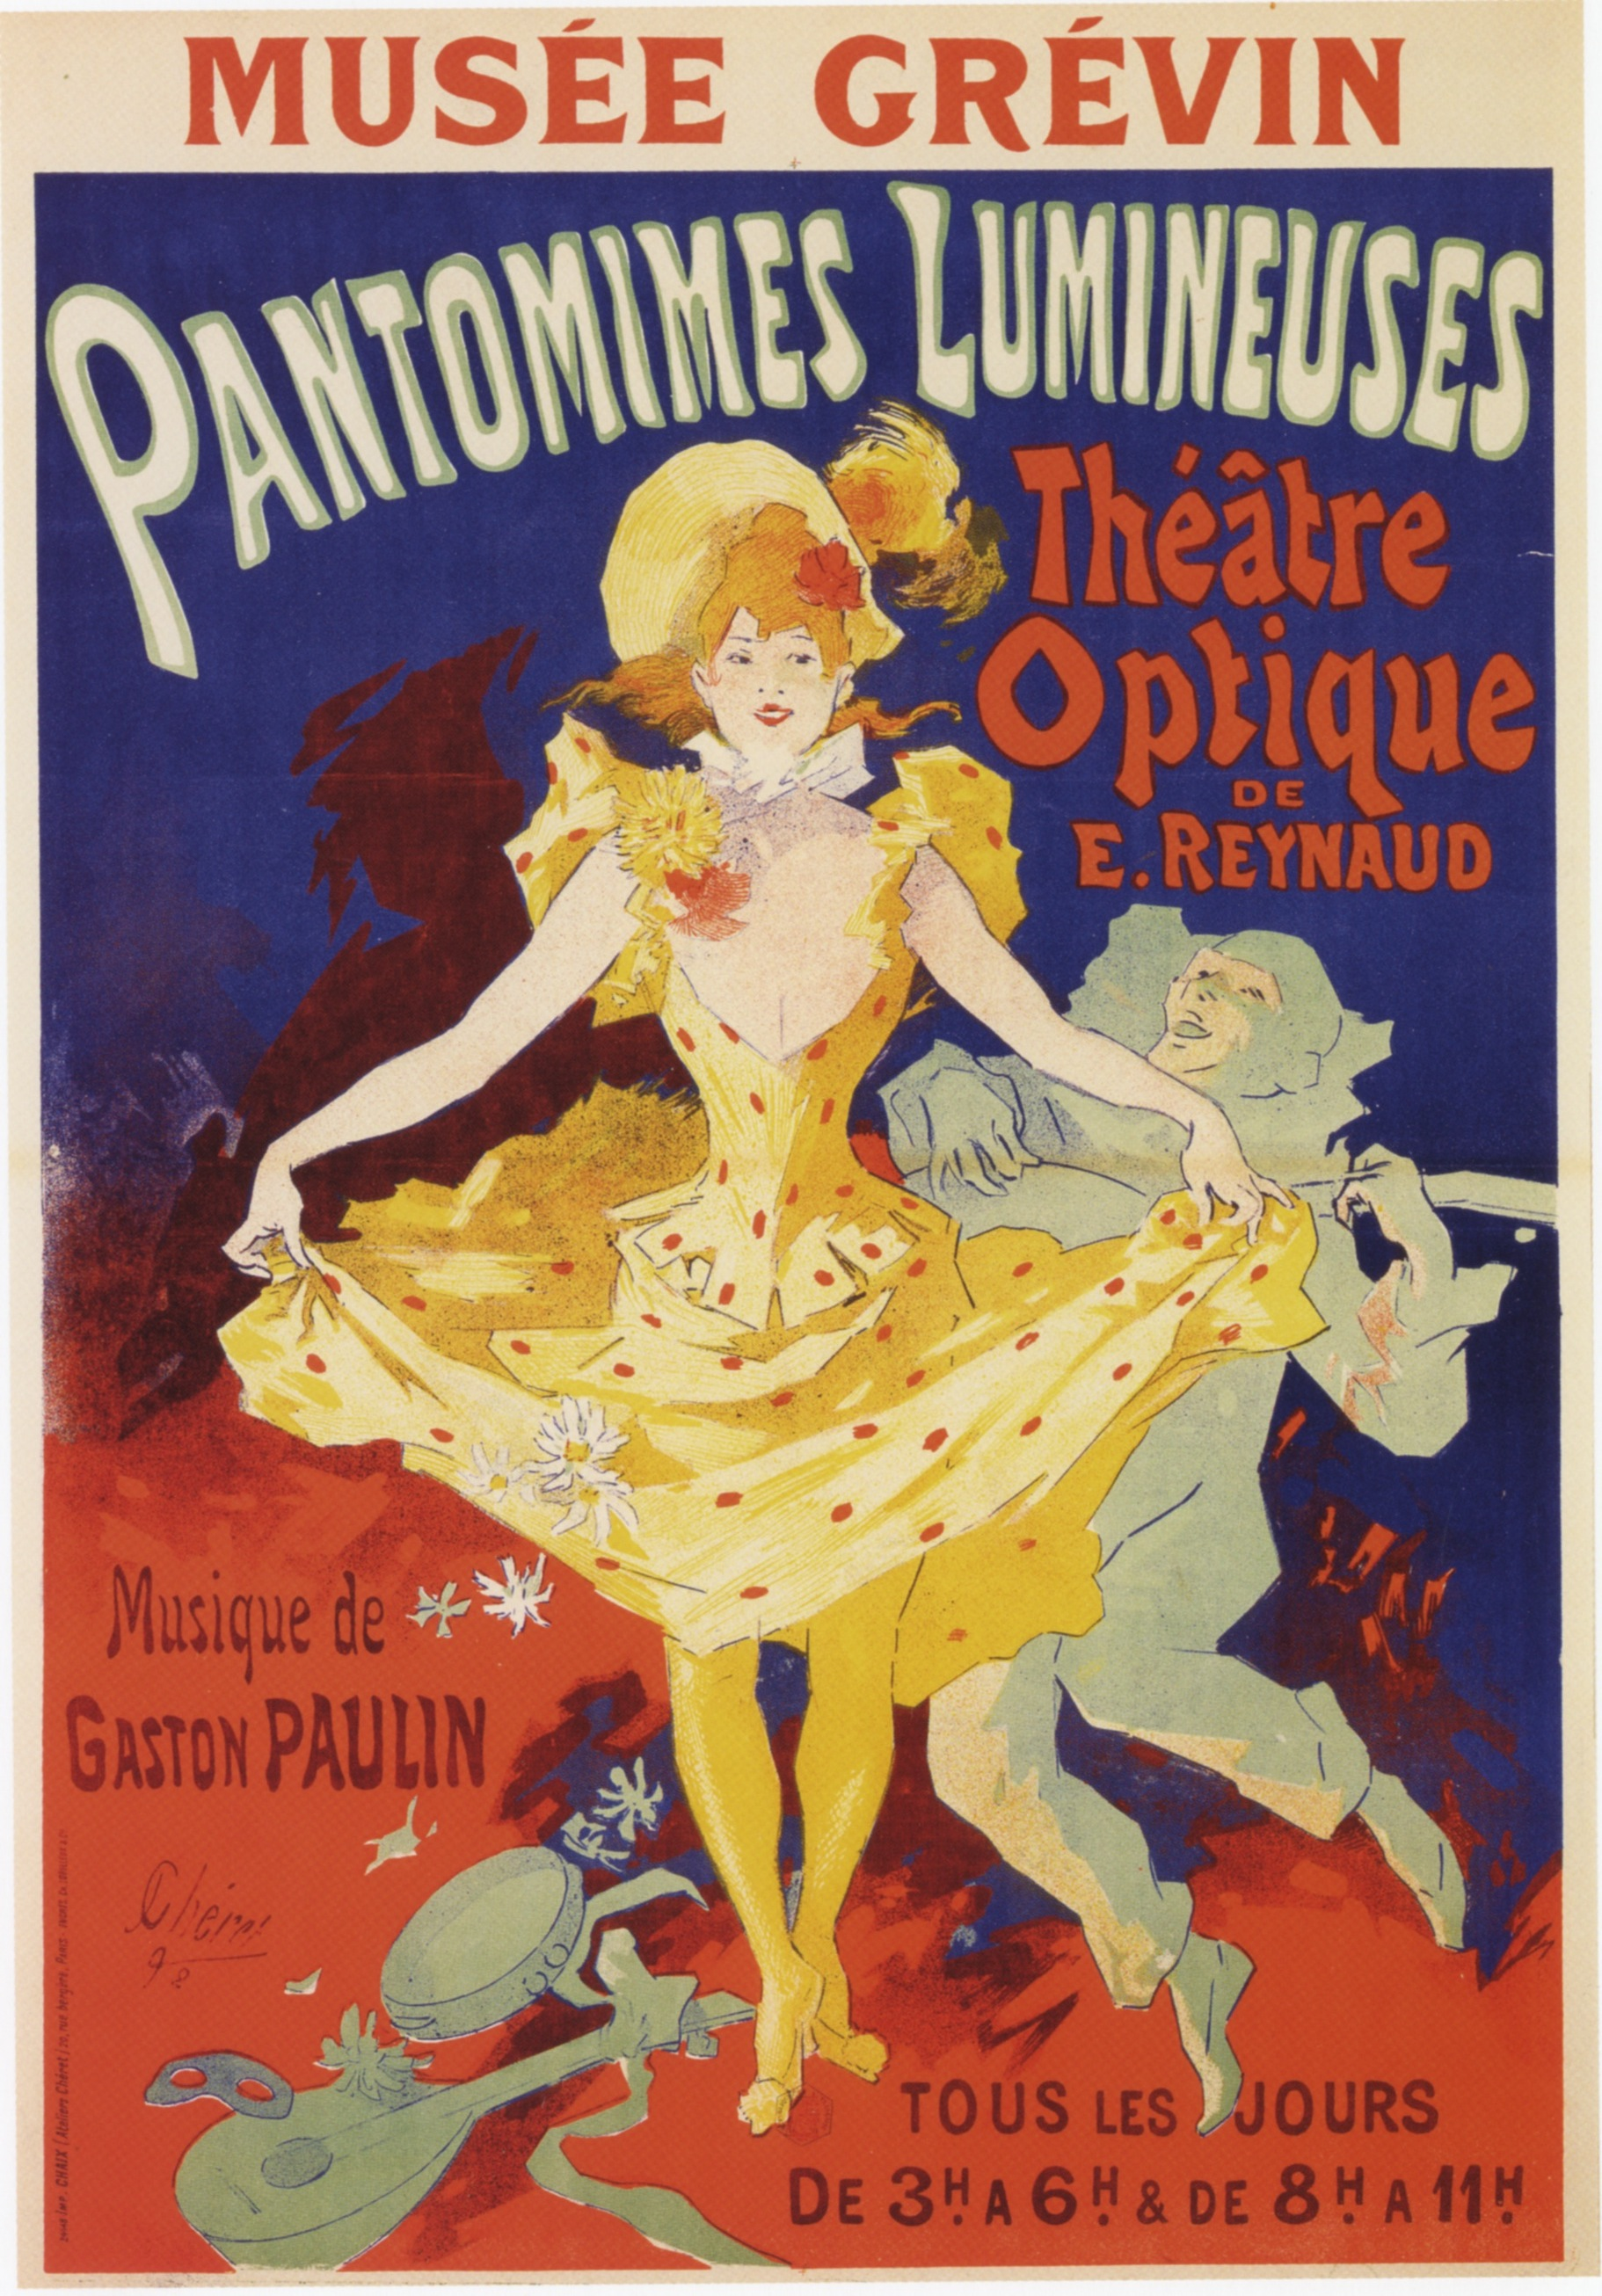 Jules Chéret,  Pantomimes Lumineuses , advertising poster for early motion picture screening, 1898.